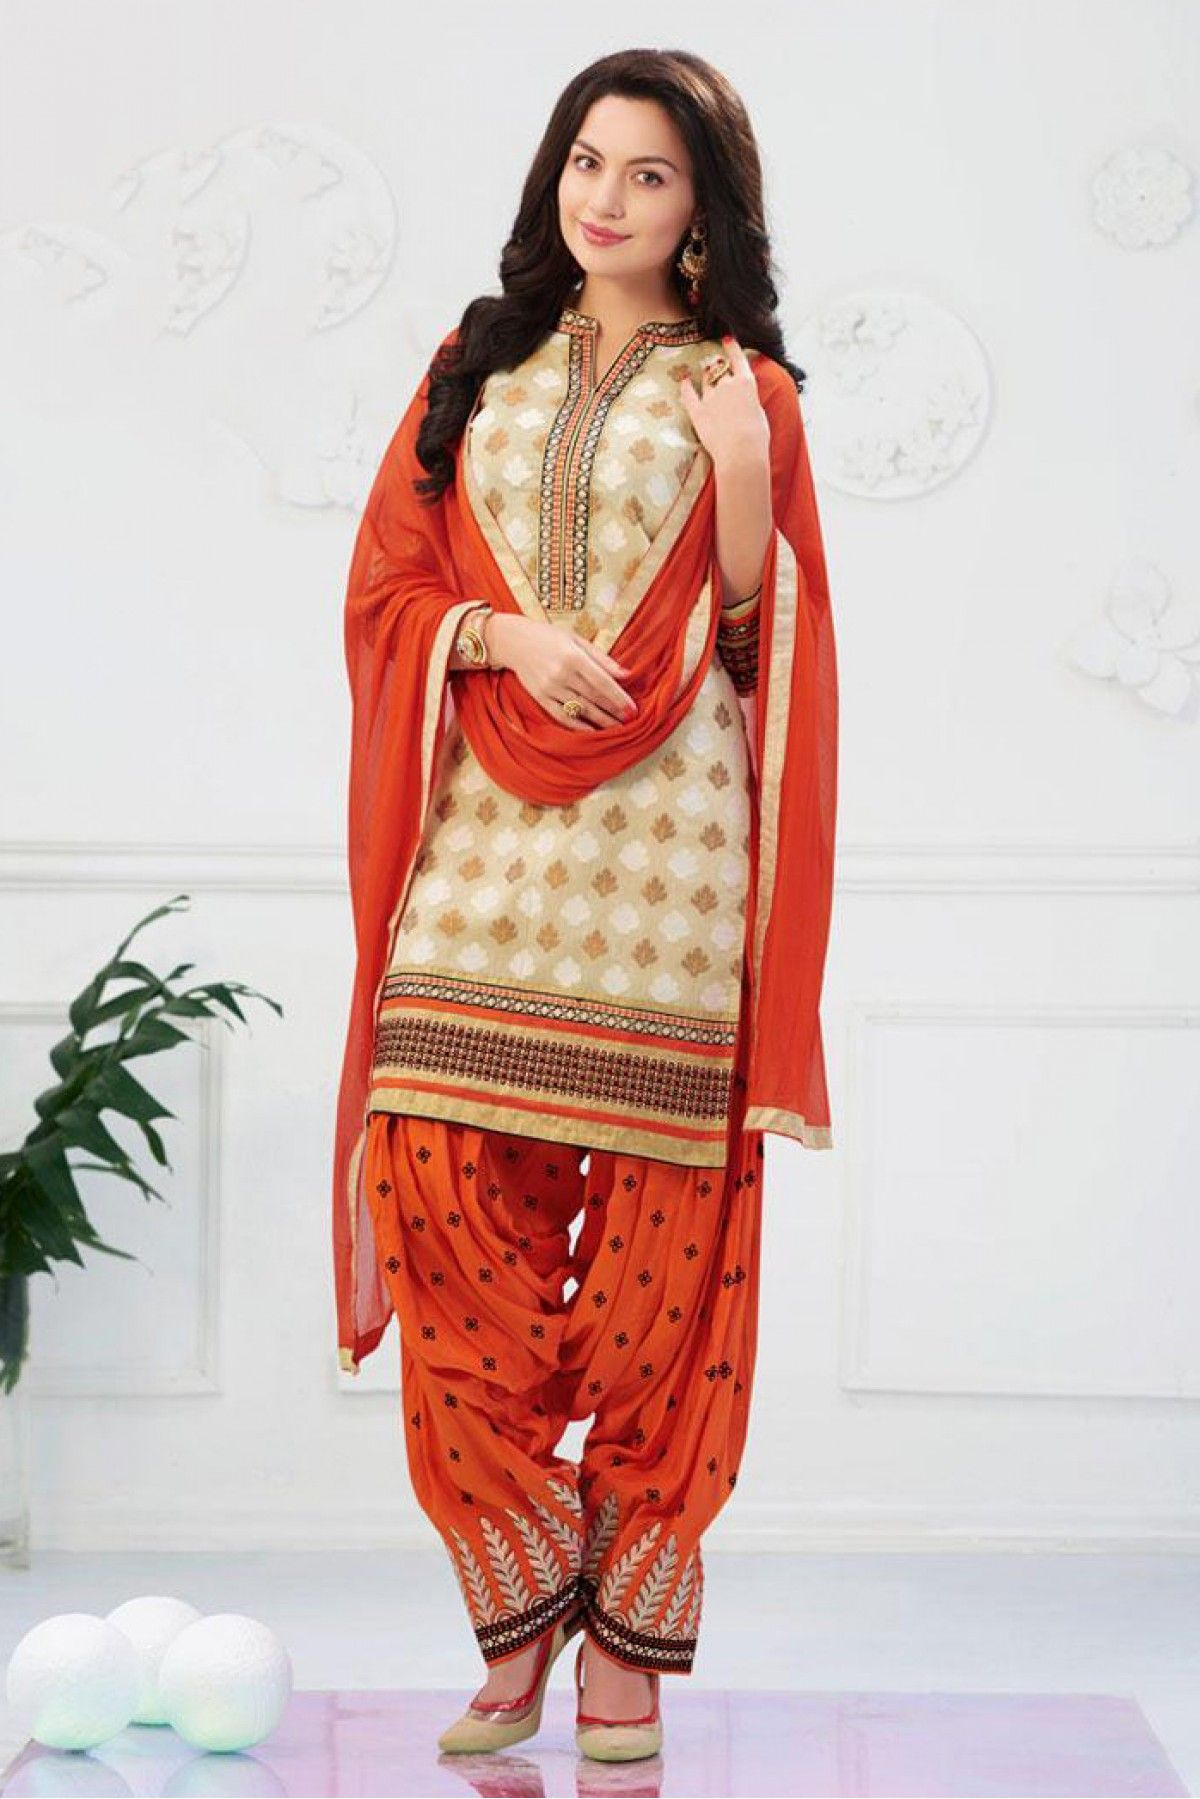 f1f5dcd65d Off White and Orange Colour Banarasi Jacquard Fabric Designer Unstitched  Patiala Salwar Kameez Comes With Matching Dupatta and Bottom Fabric. This  Suit Is ...